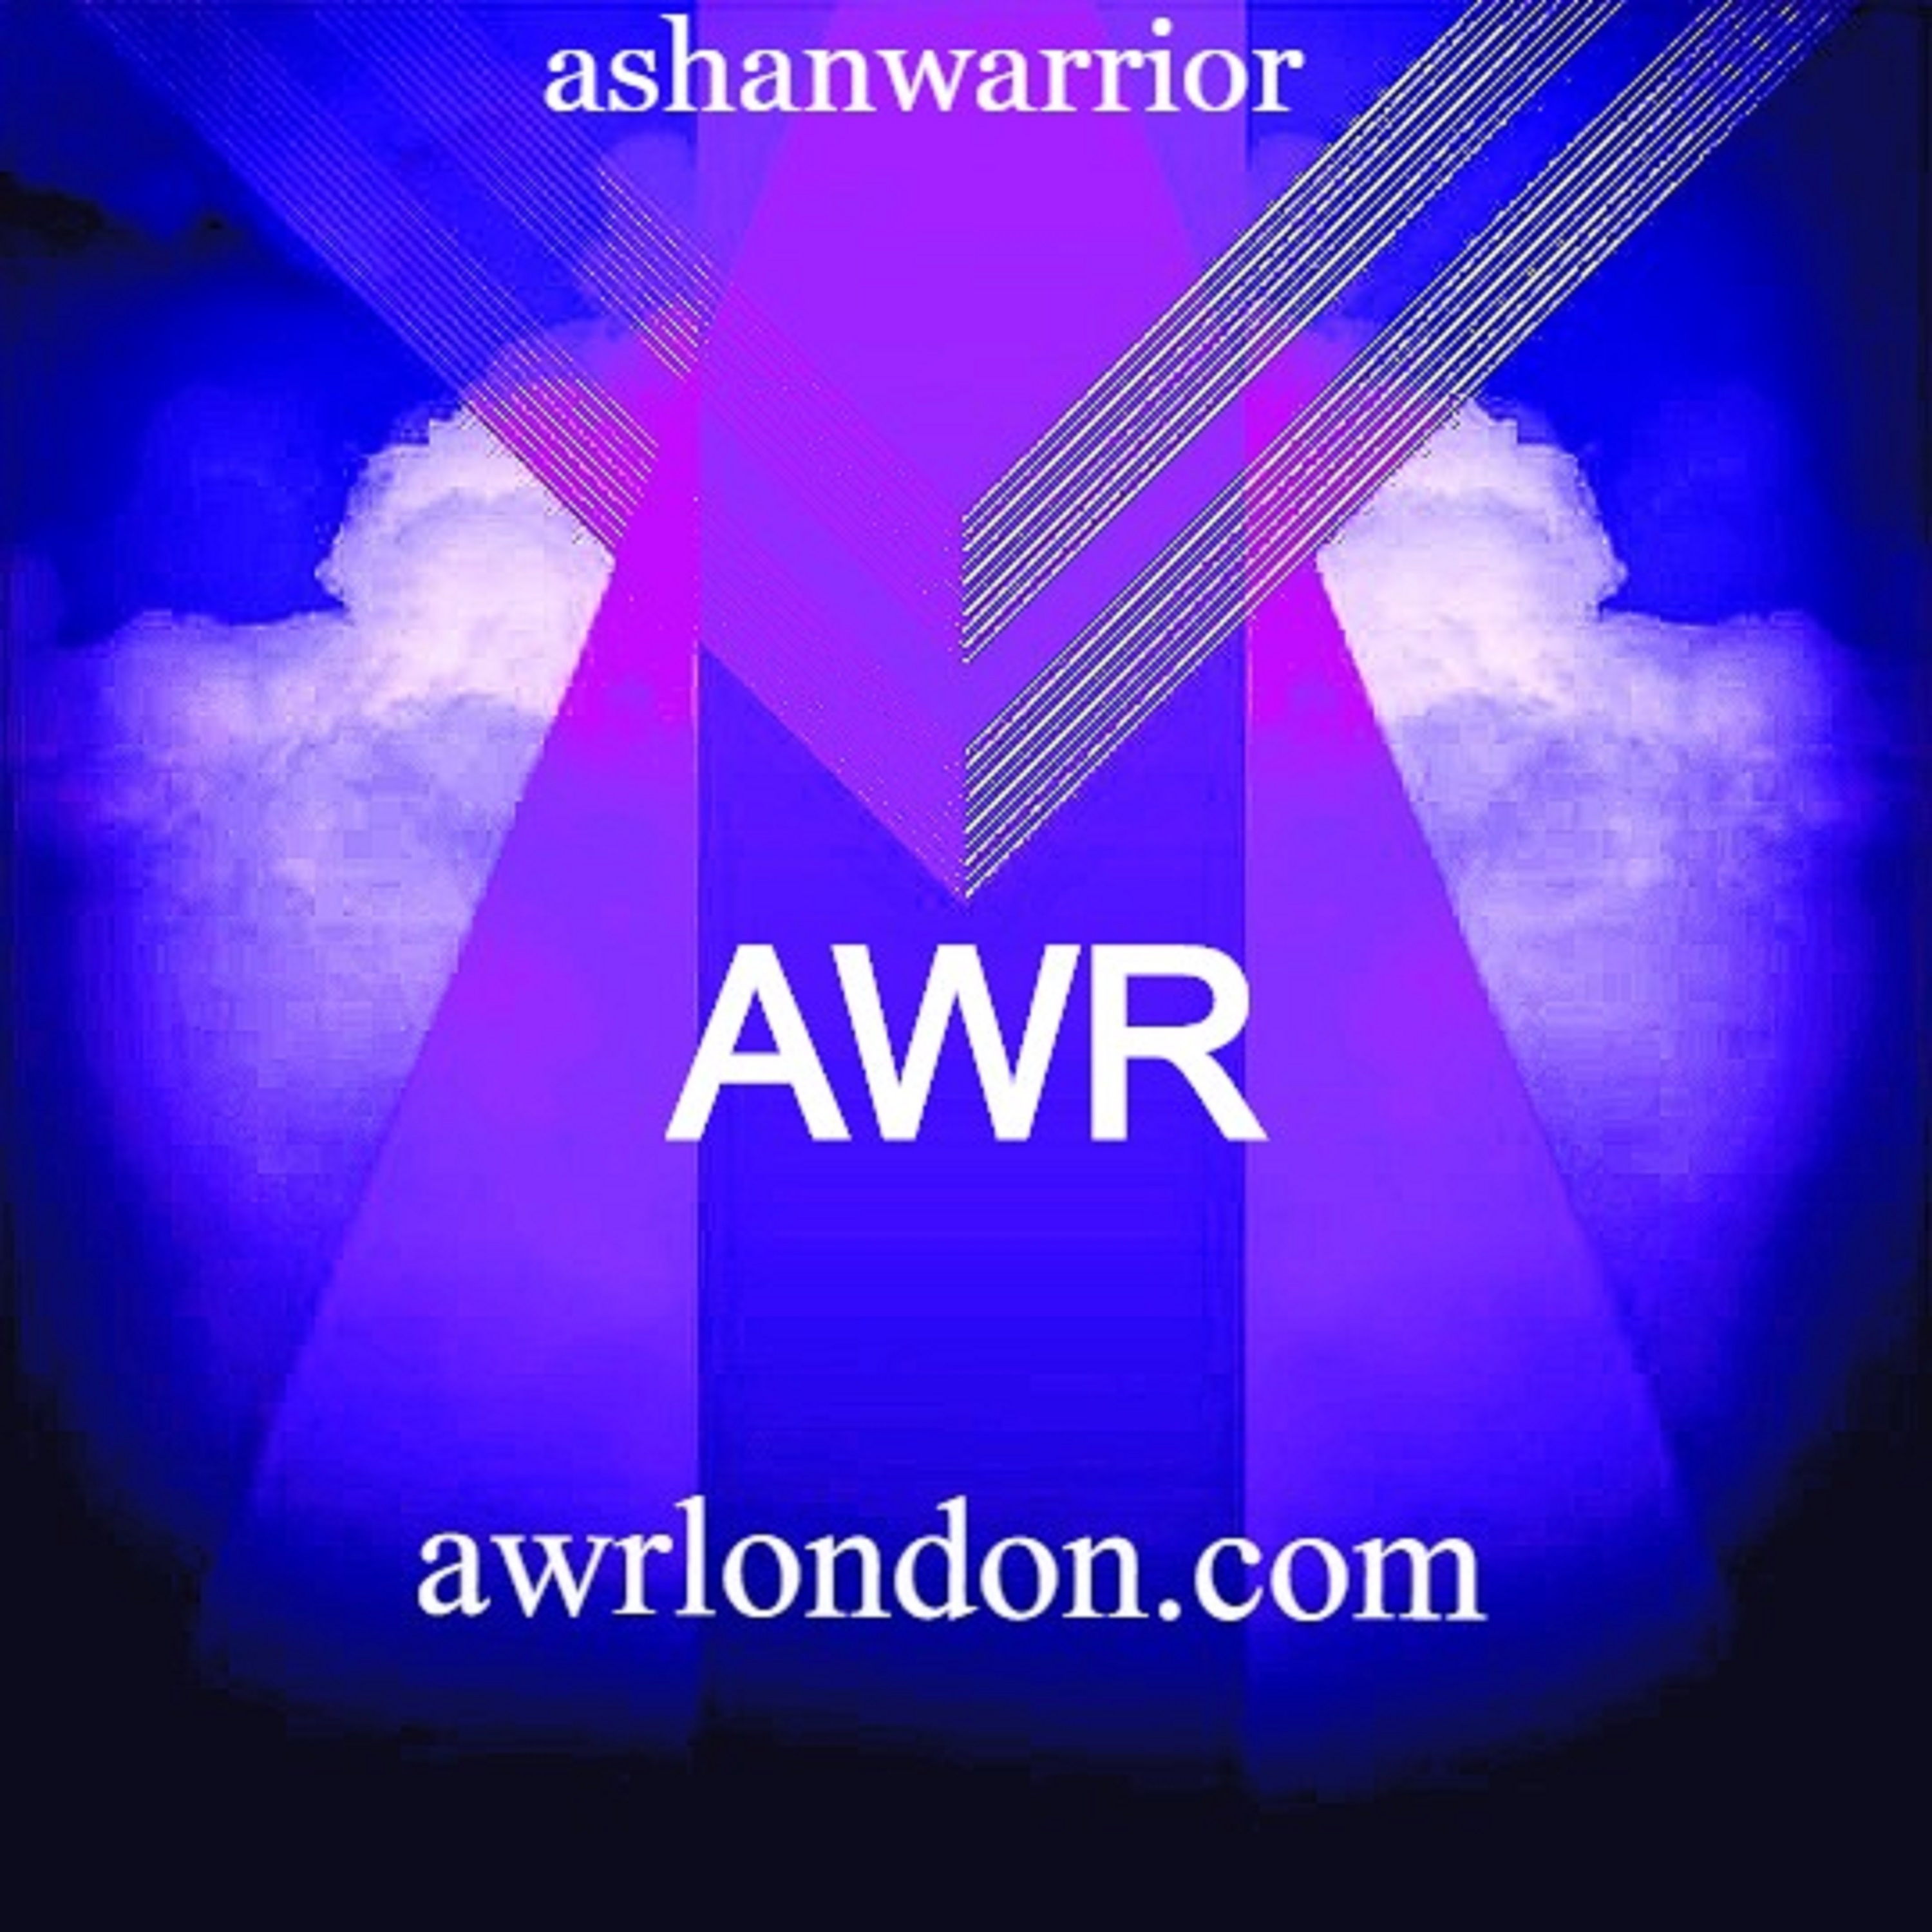 Ashanwarrior Releases A Song of Never Ending Compassion